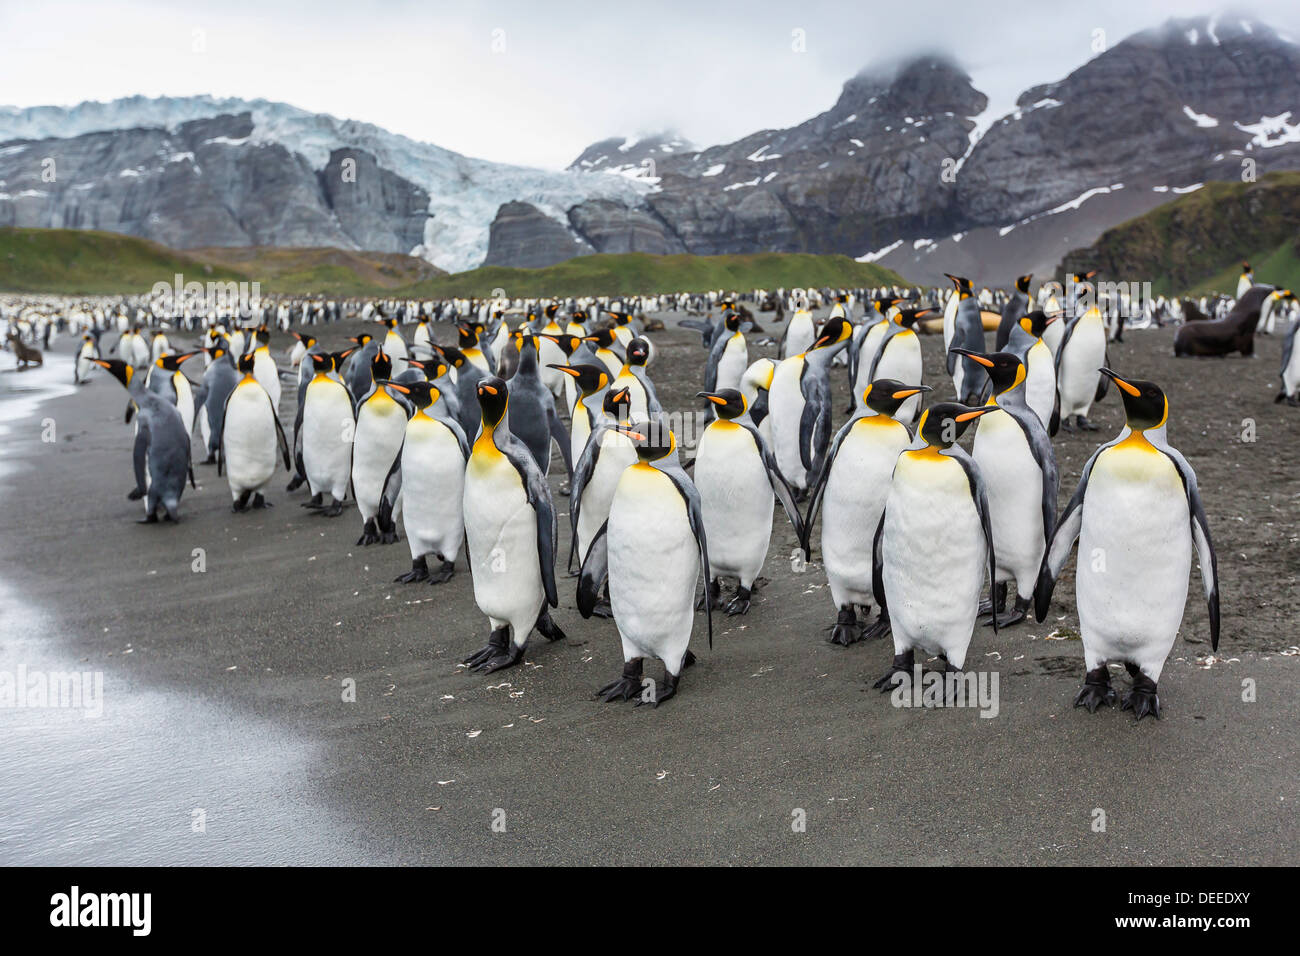 King penguins (Aptenodytes patagonicus) breeding and nesting colony at Gold Harbour, South Georgia, South Atlantic Stock Photo